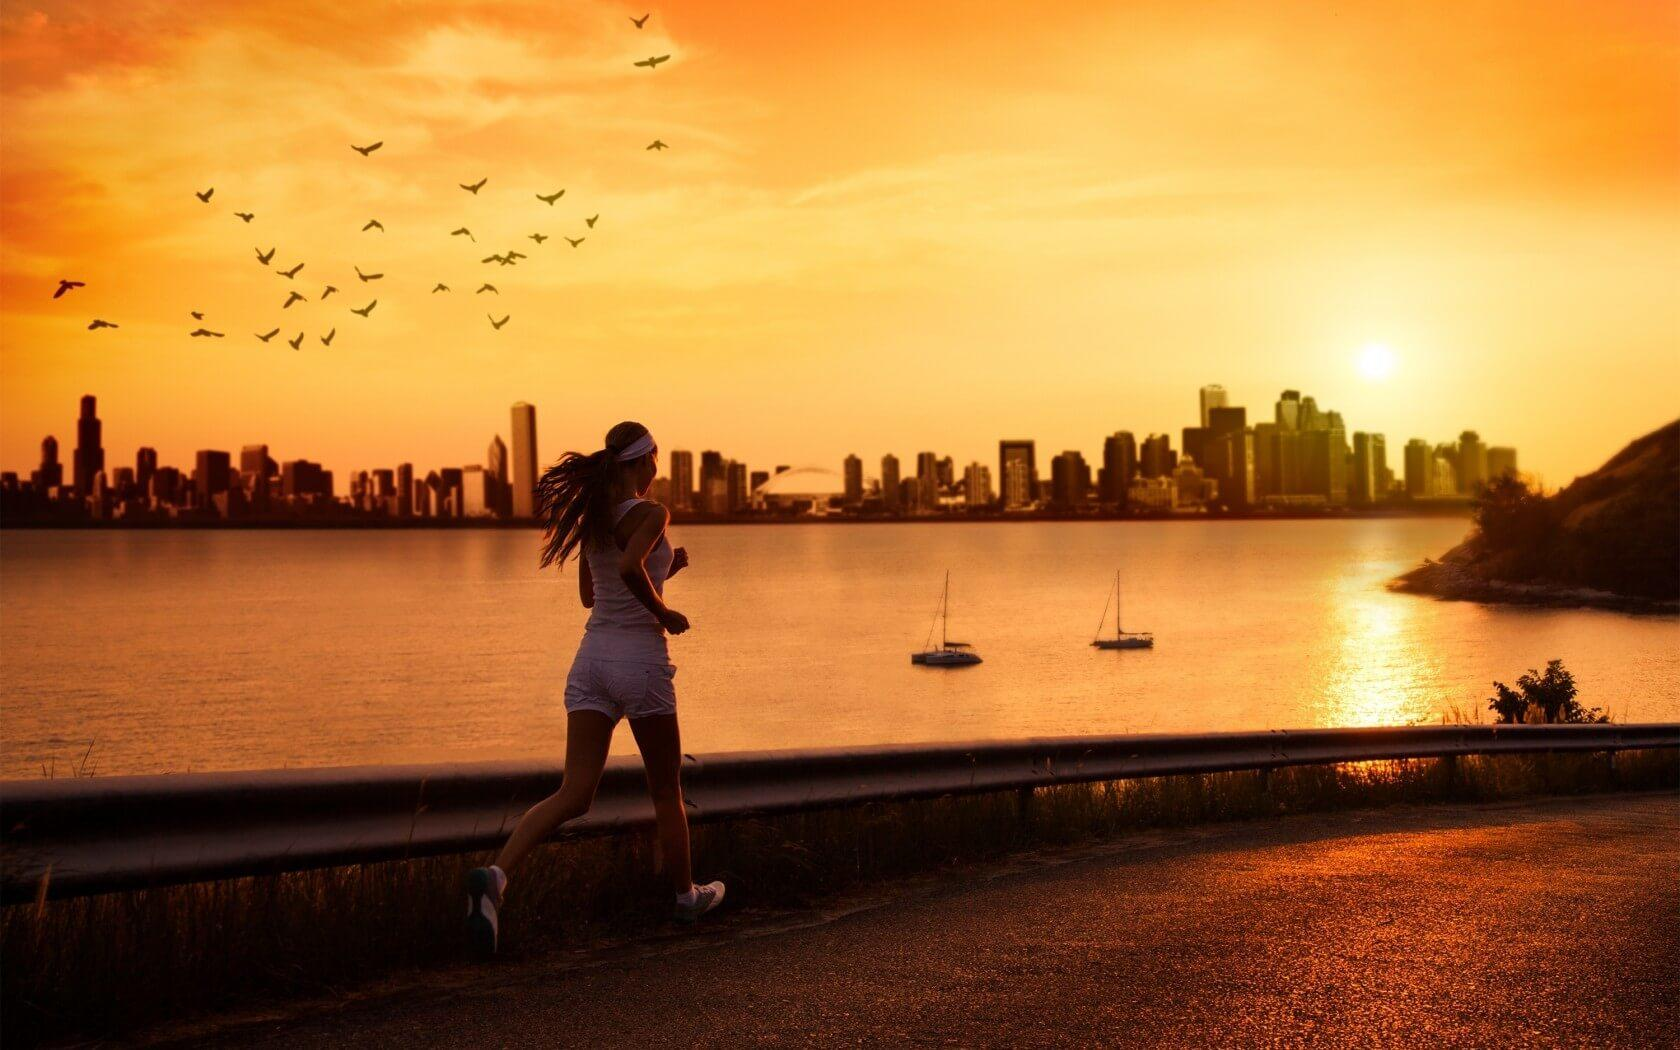 running_in_the_sunset_wallpaper_hd